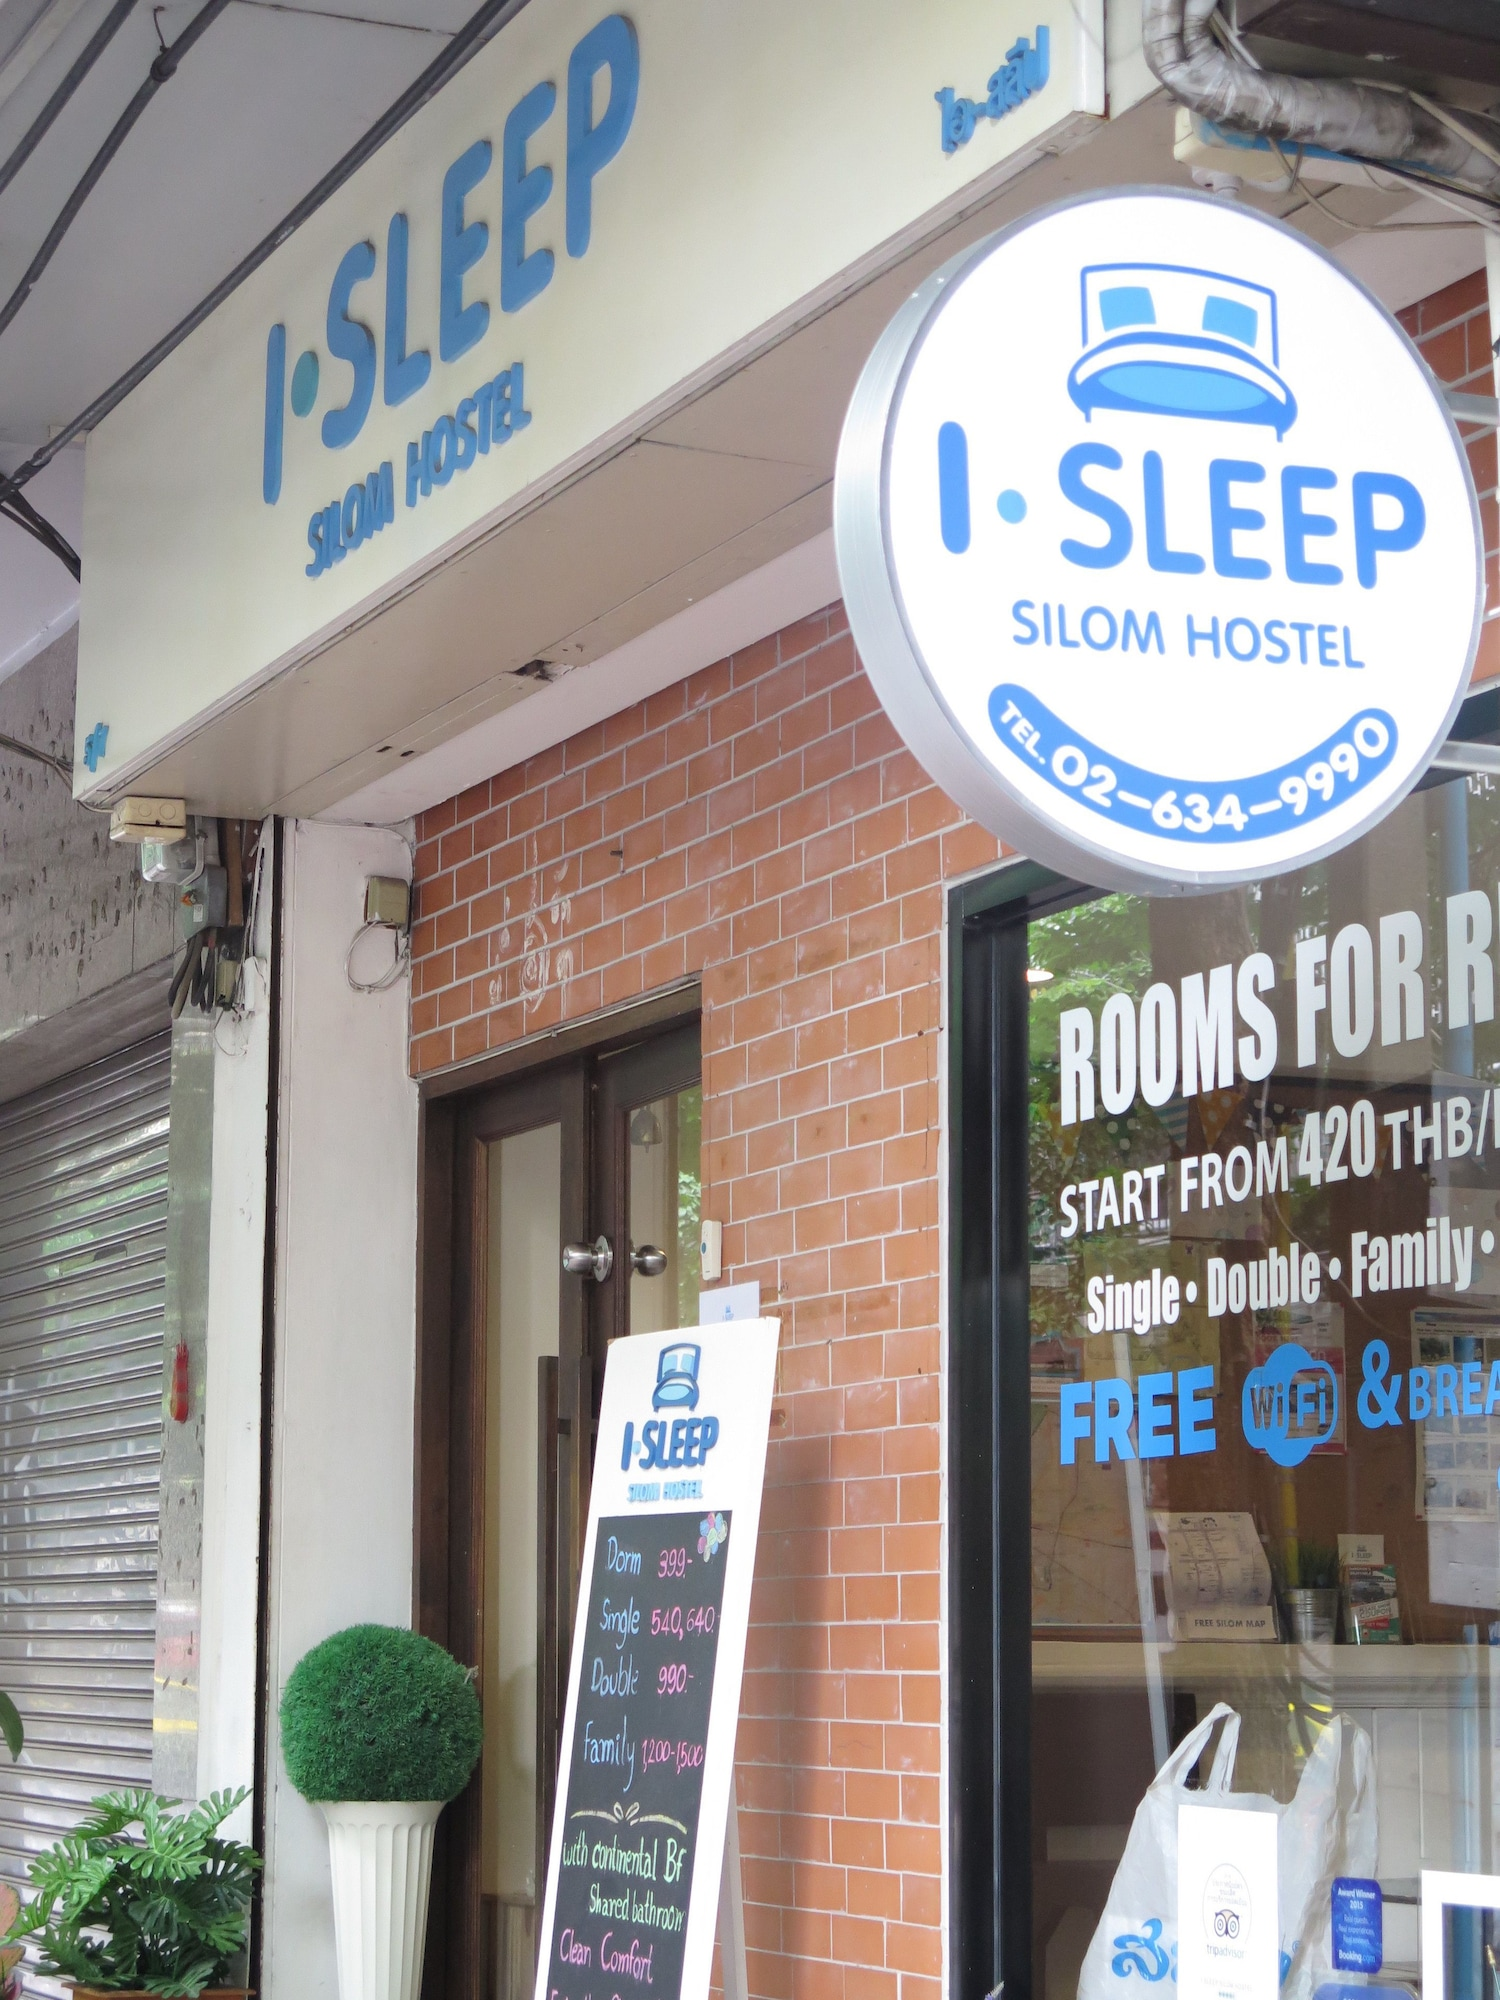 I-Sleep Silom Hostel, Bang Rak